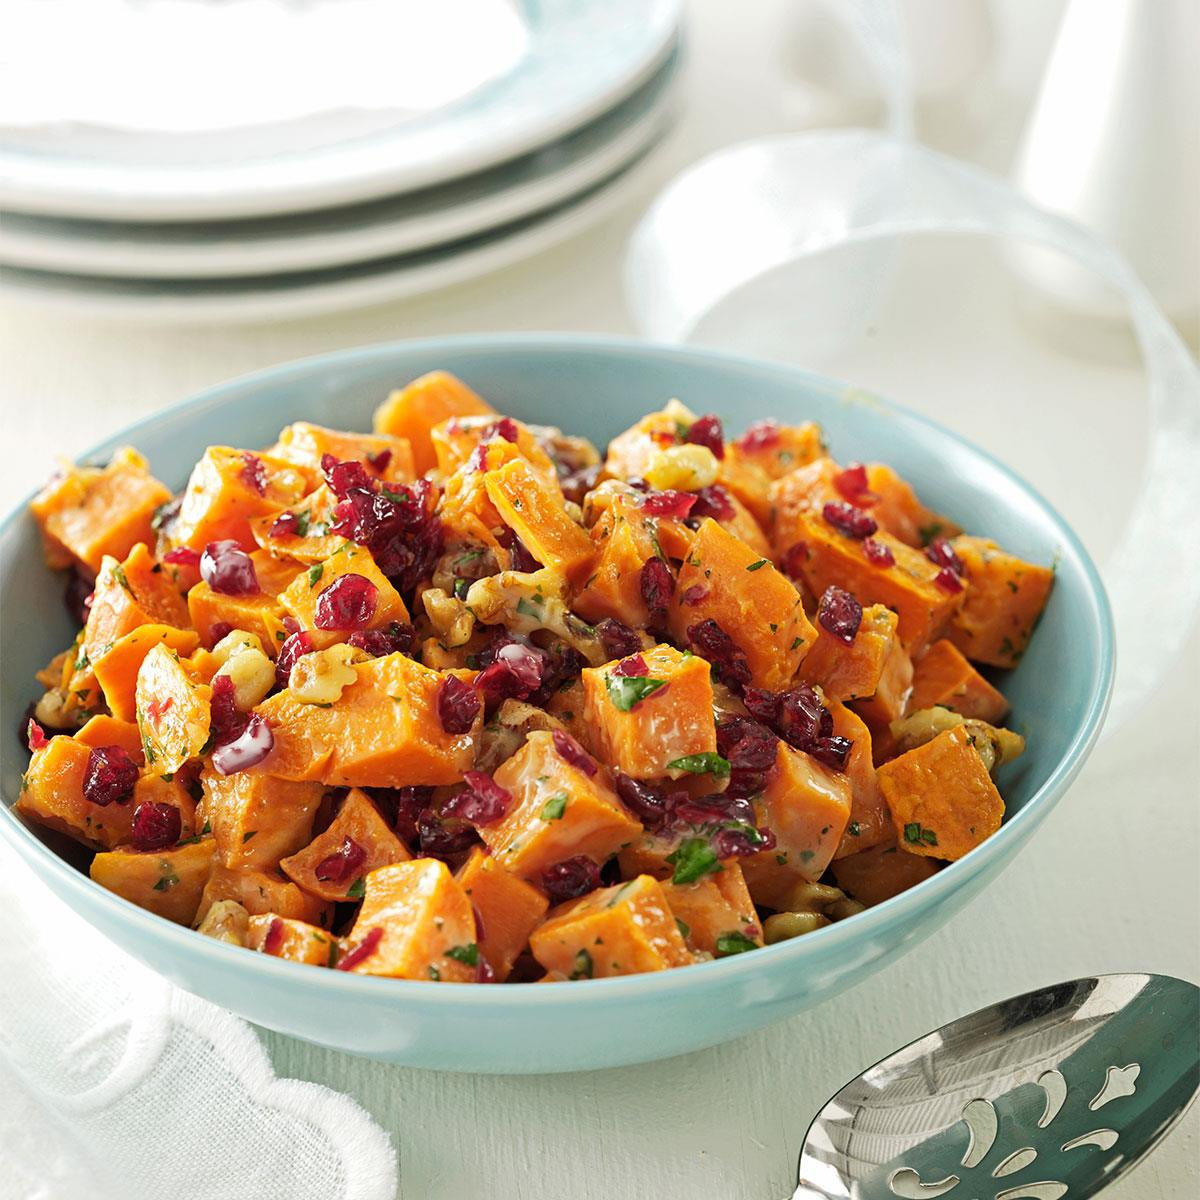 Roasted Sweet Potato Salad Recipe How To Make It Taste Of Home